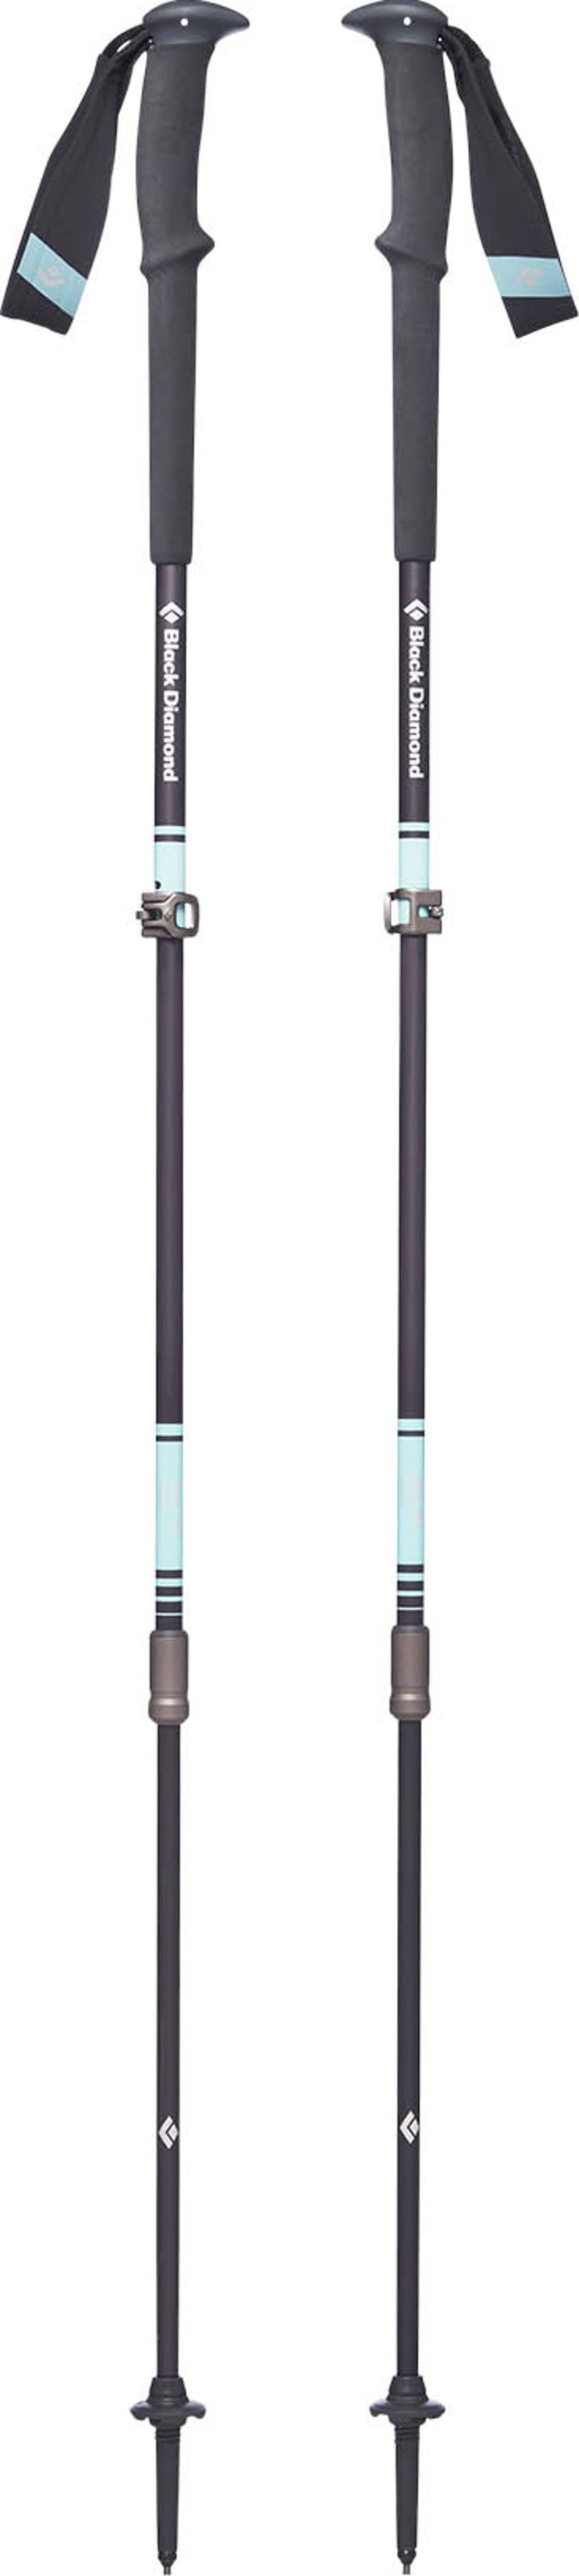 Black Diamond Equipment Women's Trail Pro Trekking Poles